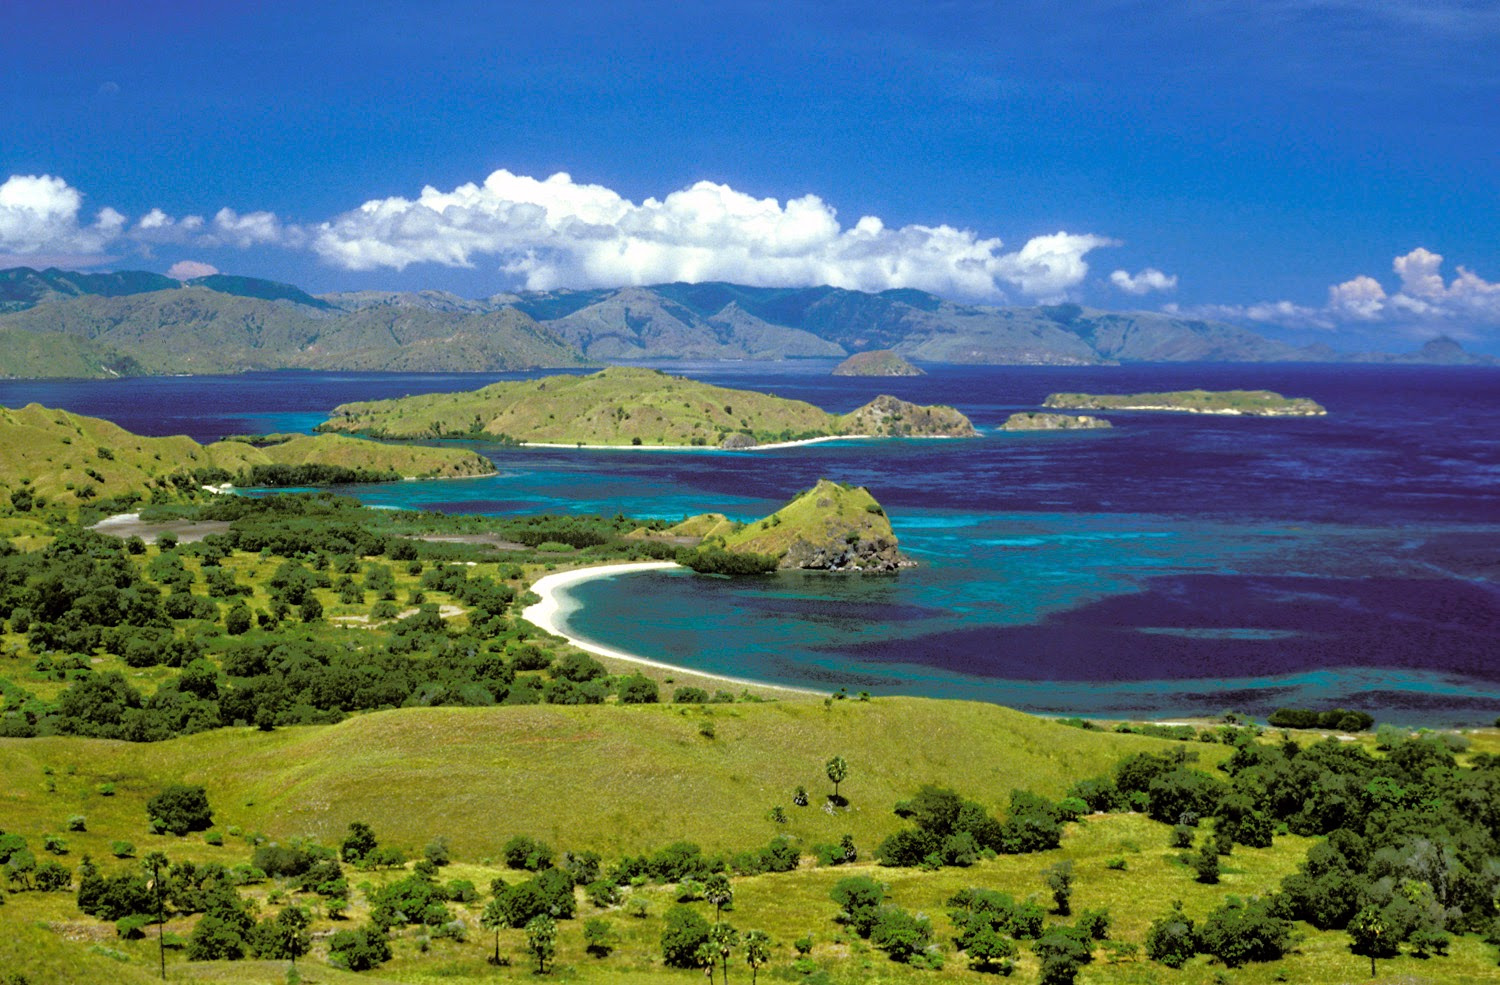 Since the komodo national park was established, the population of